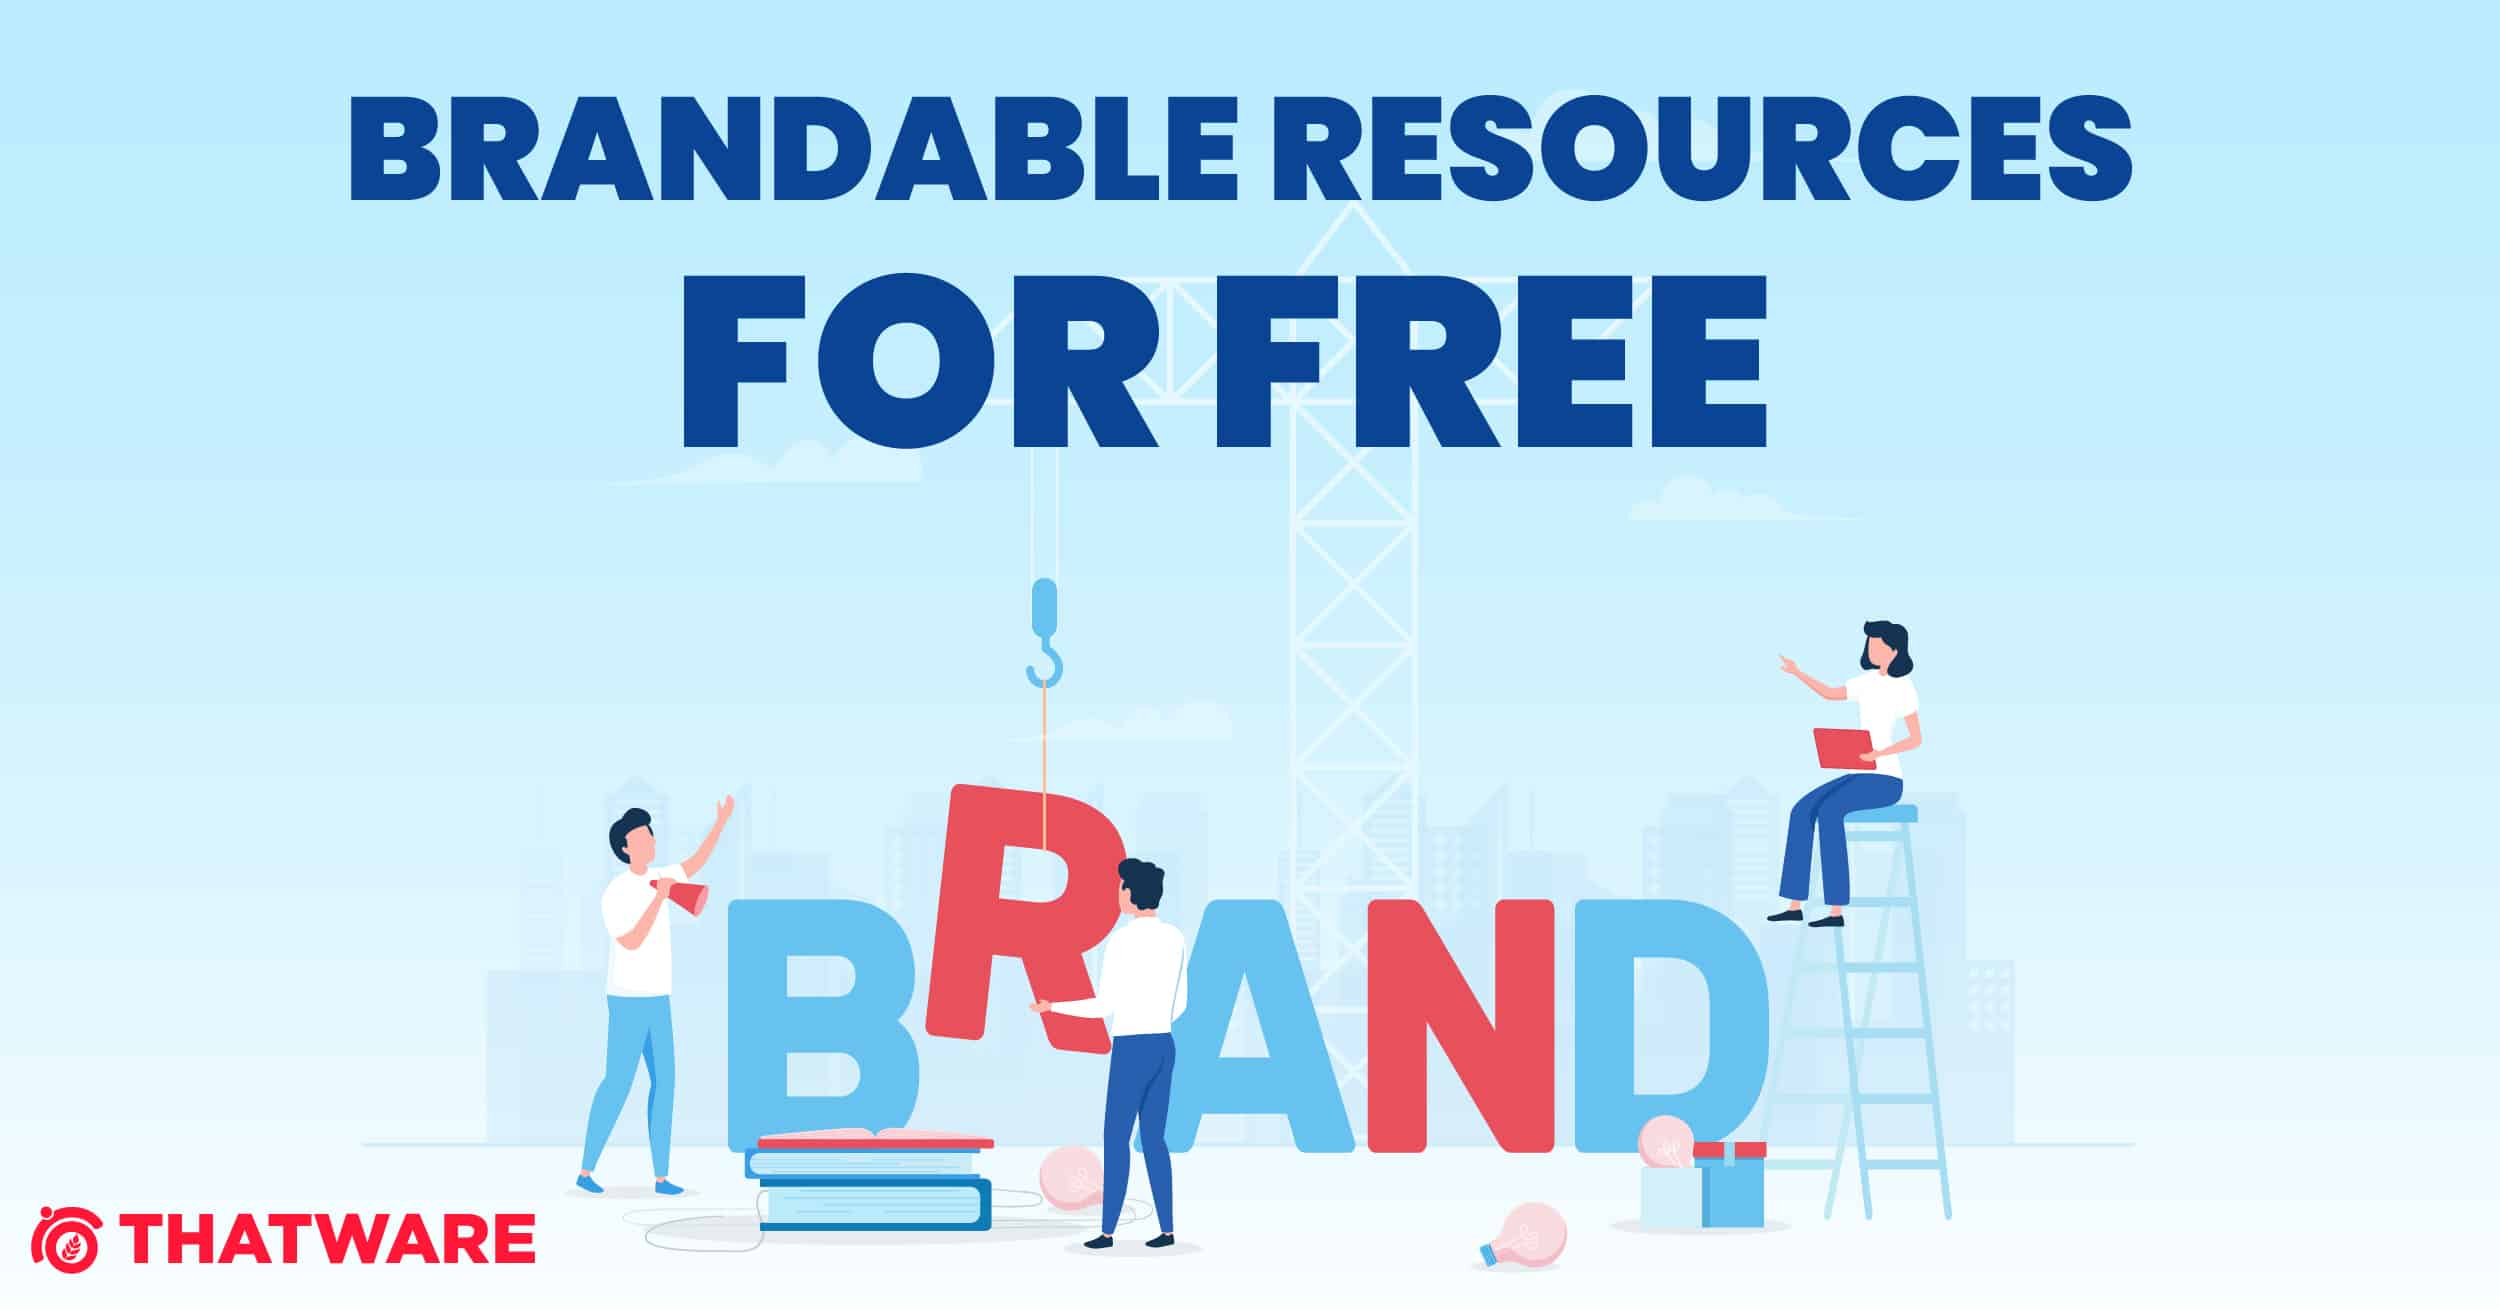 BRANDABLE RESOURCES FOR FREE